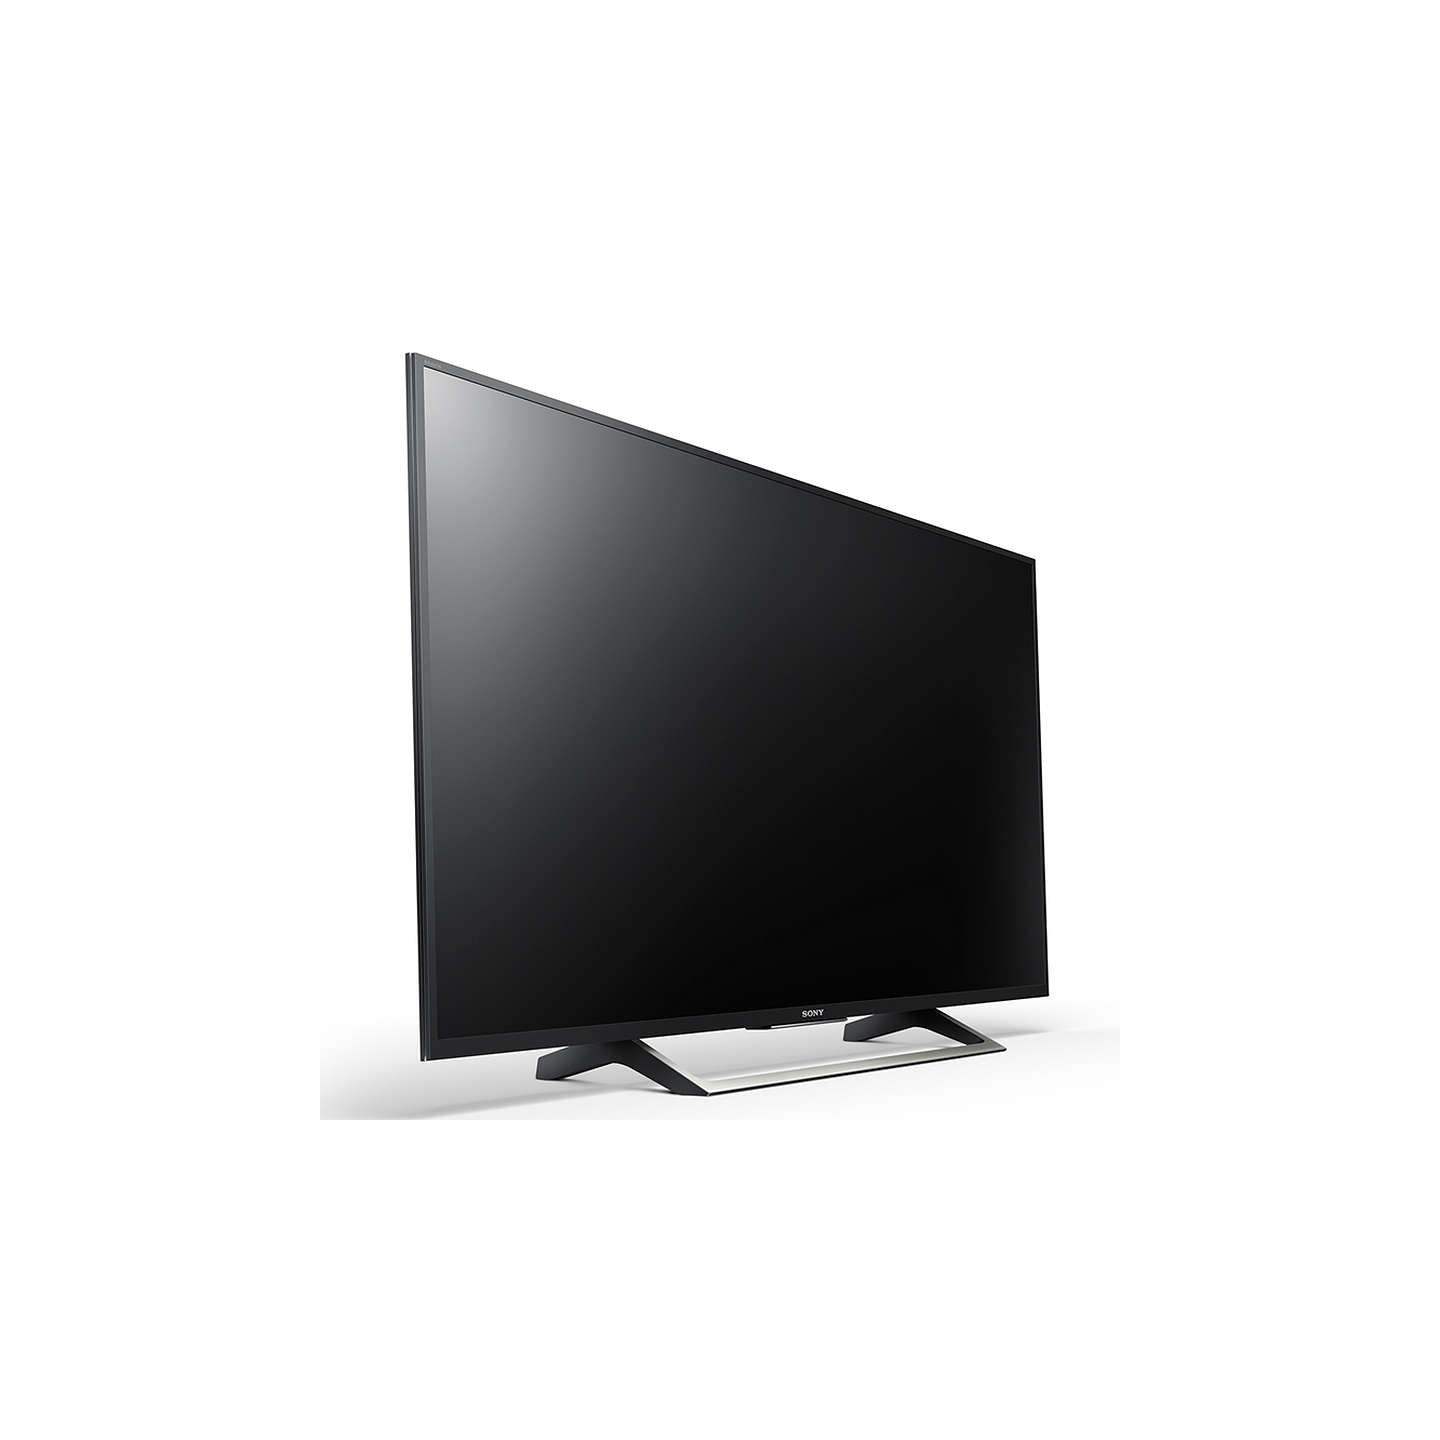 sony bravia kd55xe7003 led hdr 4k ultra hd smart tv 55 with freeview play cable management. Black Bedroom Furniture Sets. Home Design Ideas